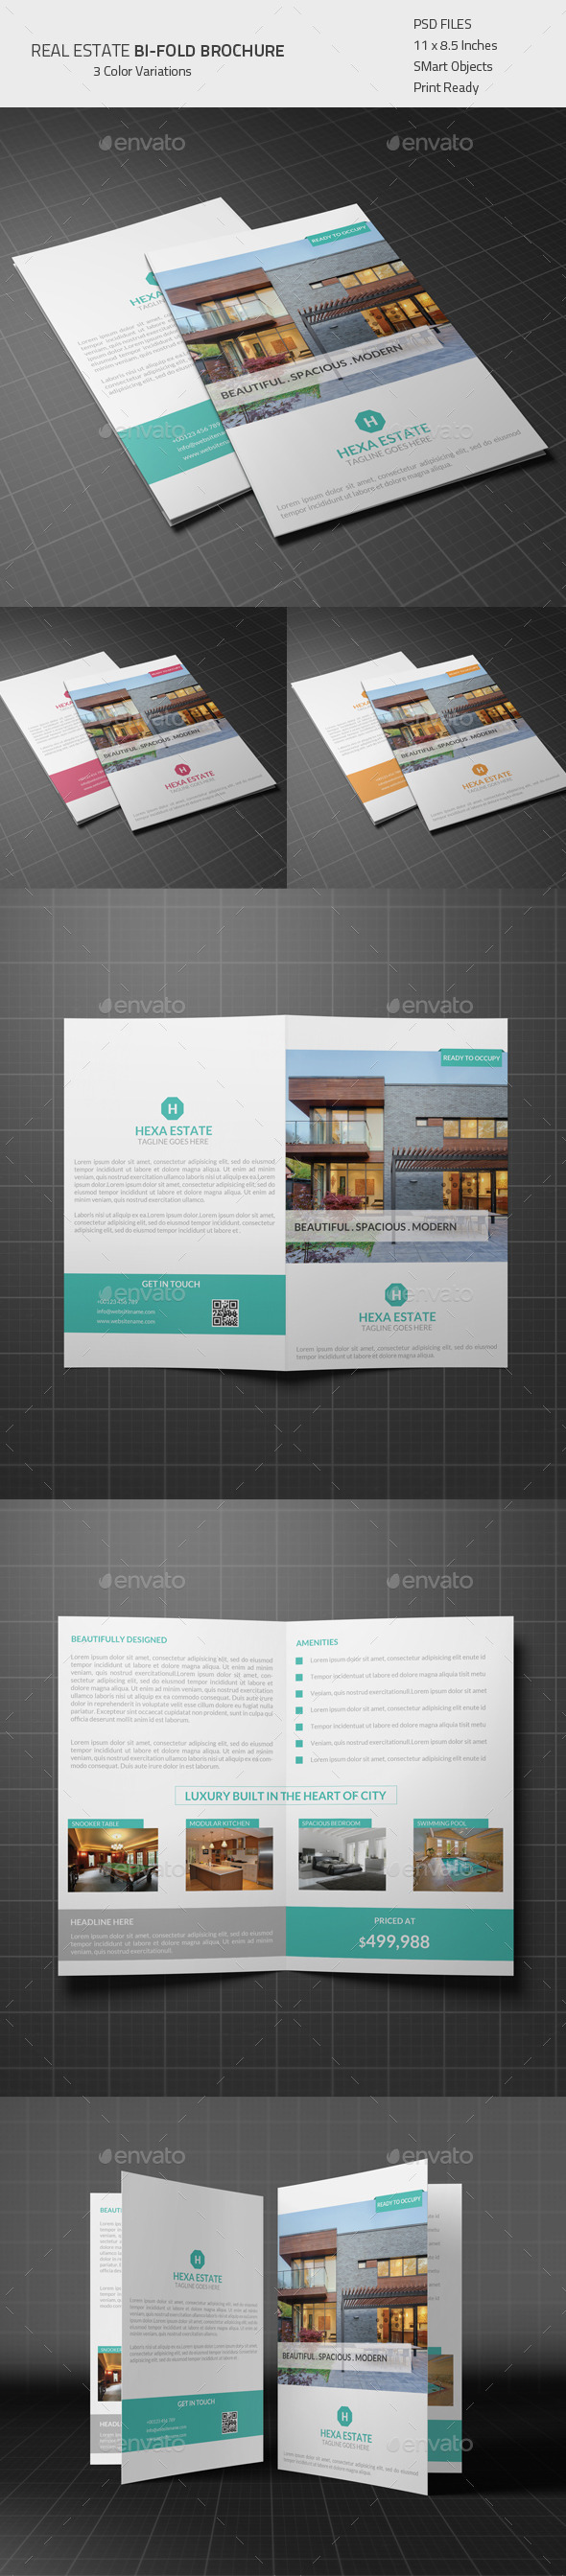 Real Estate Bi-fold Brochure - Corporate Brochures